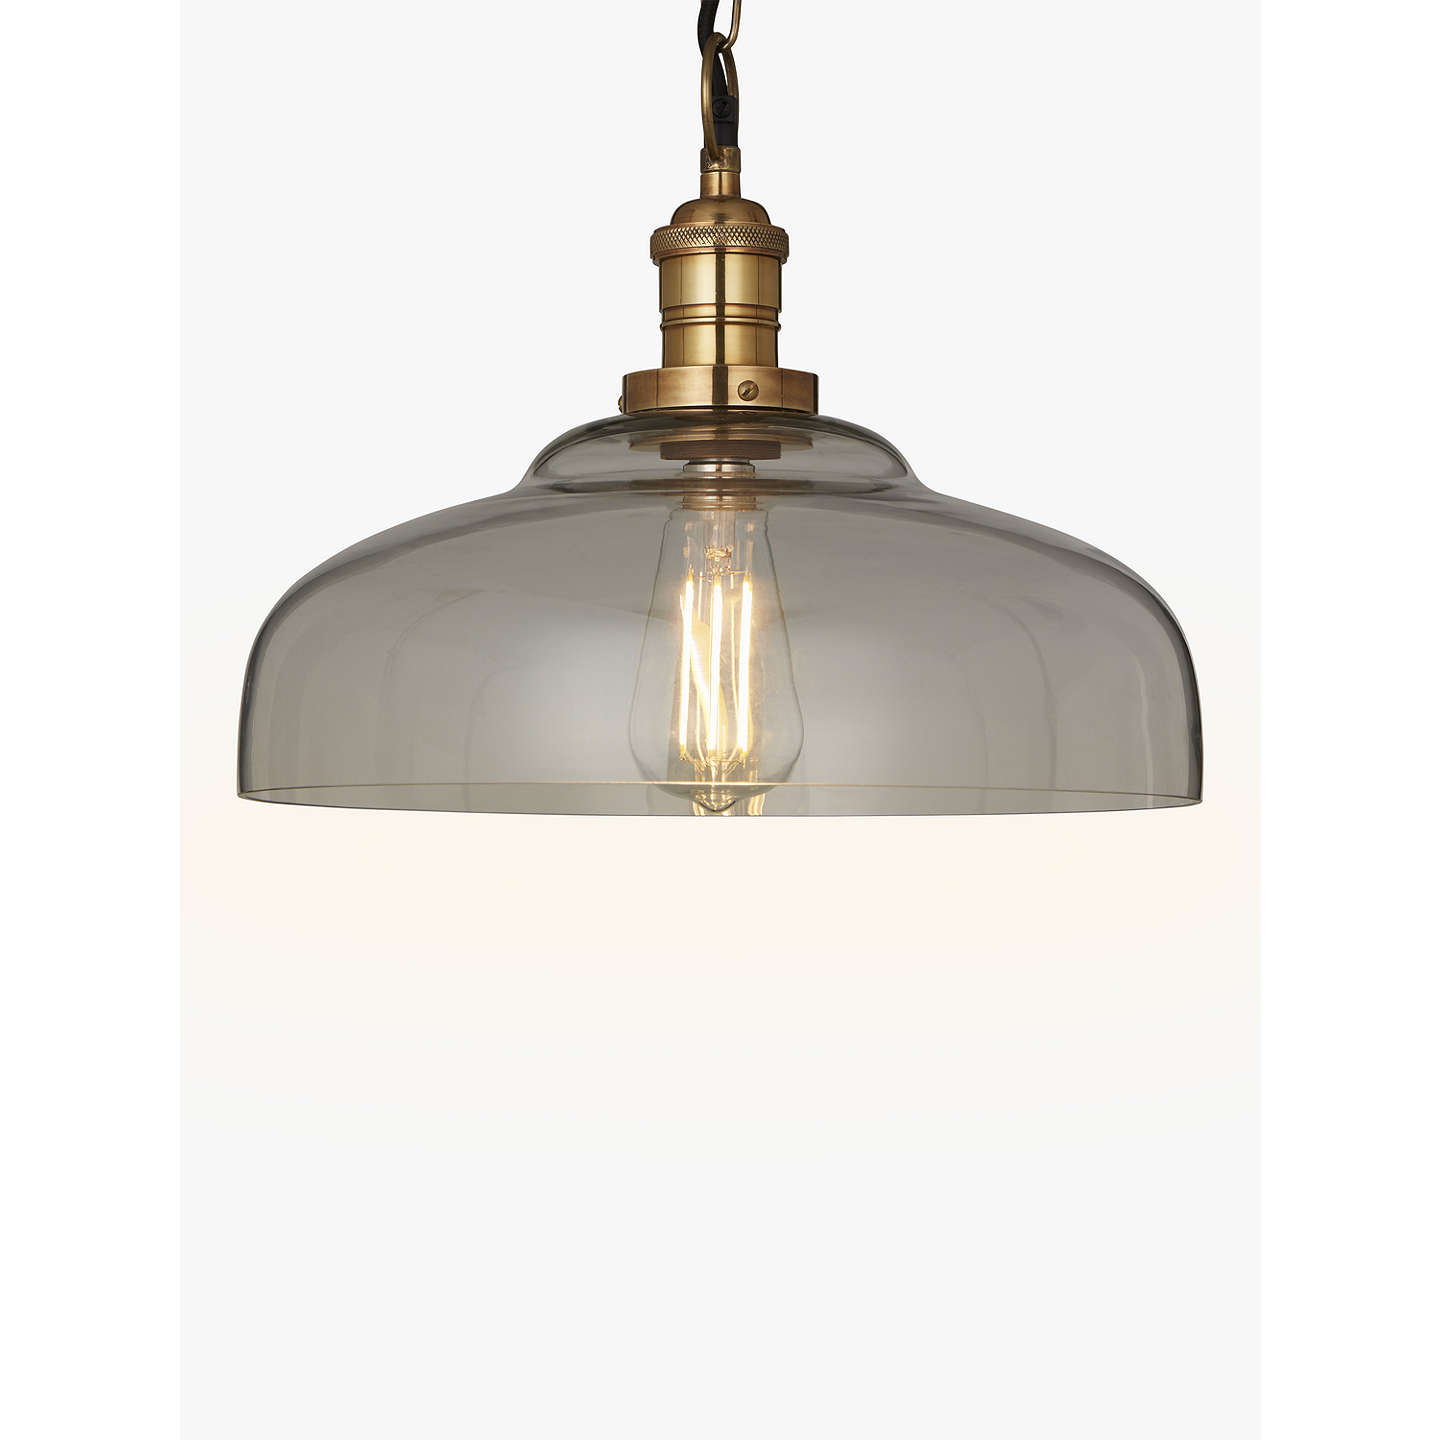 Croft collection clyde glass pendant ceiling light at john lewis buycroft collection clyde glass pendant ceiling light online at johnlewis mozeypictures Image collections